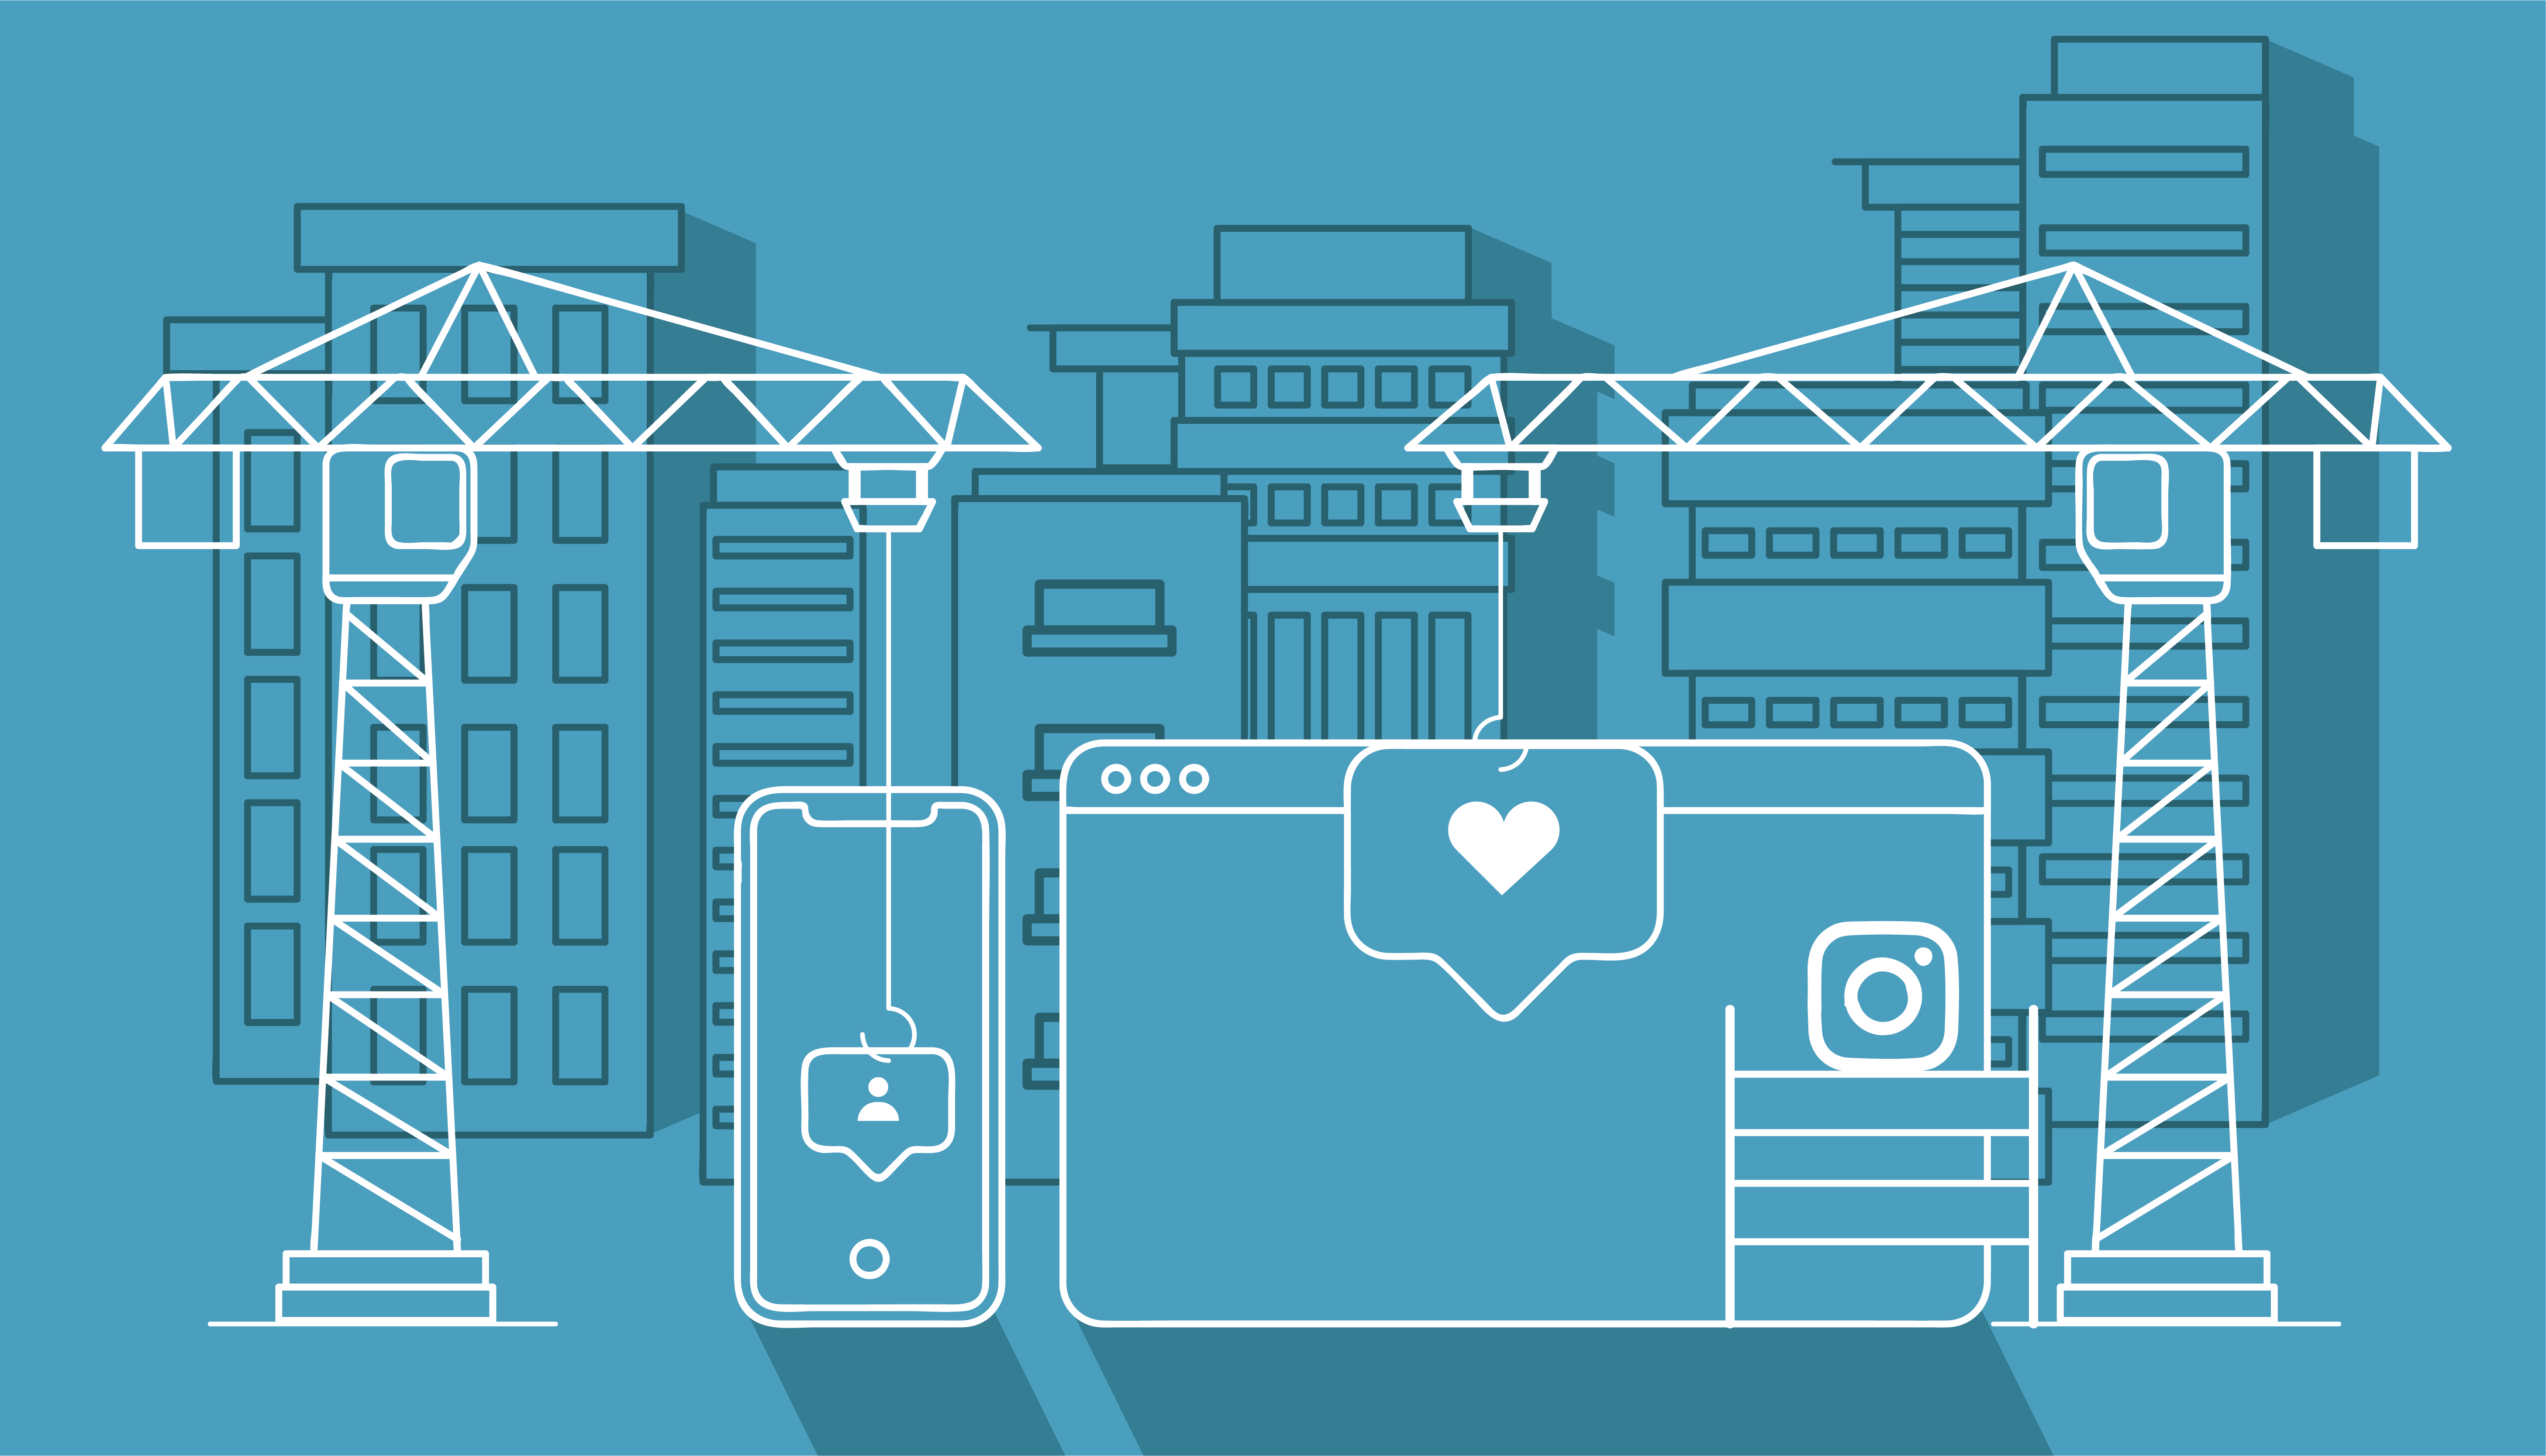 How to Build Customer Relationship with Instagram